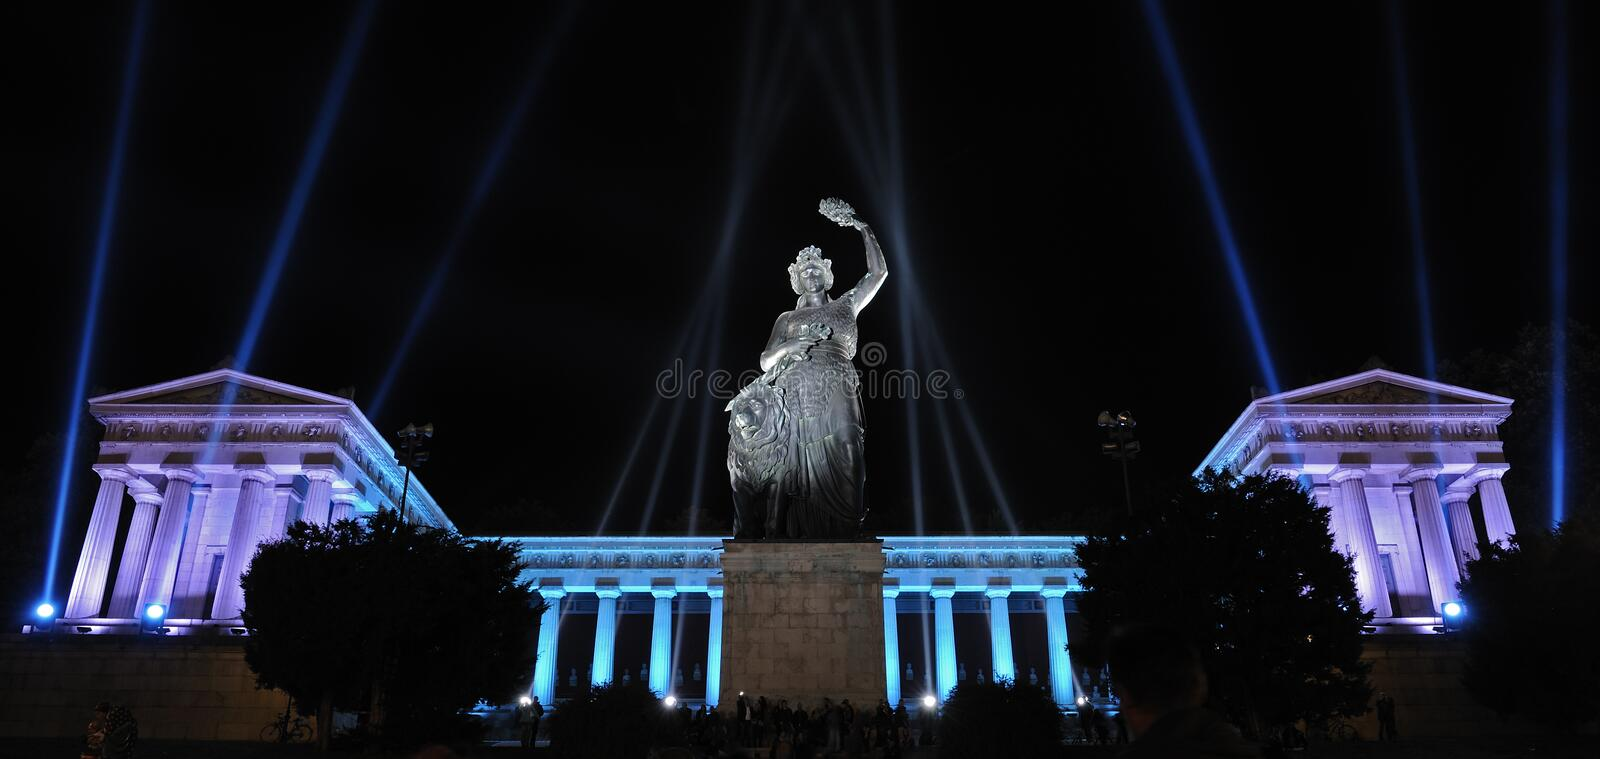 Download Anniversary Lightning At The Bavaria In Munich Stock Photo - Image: 16362846